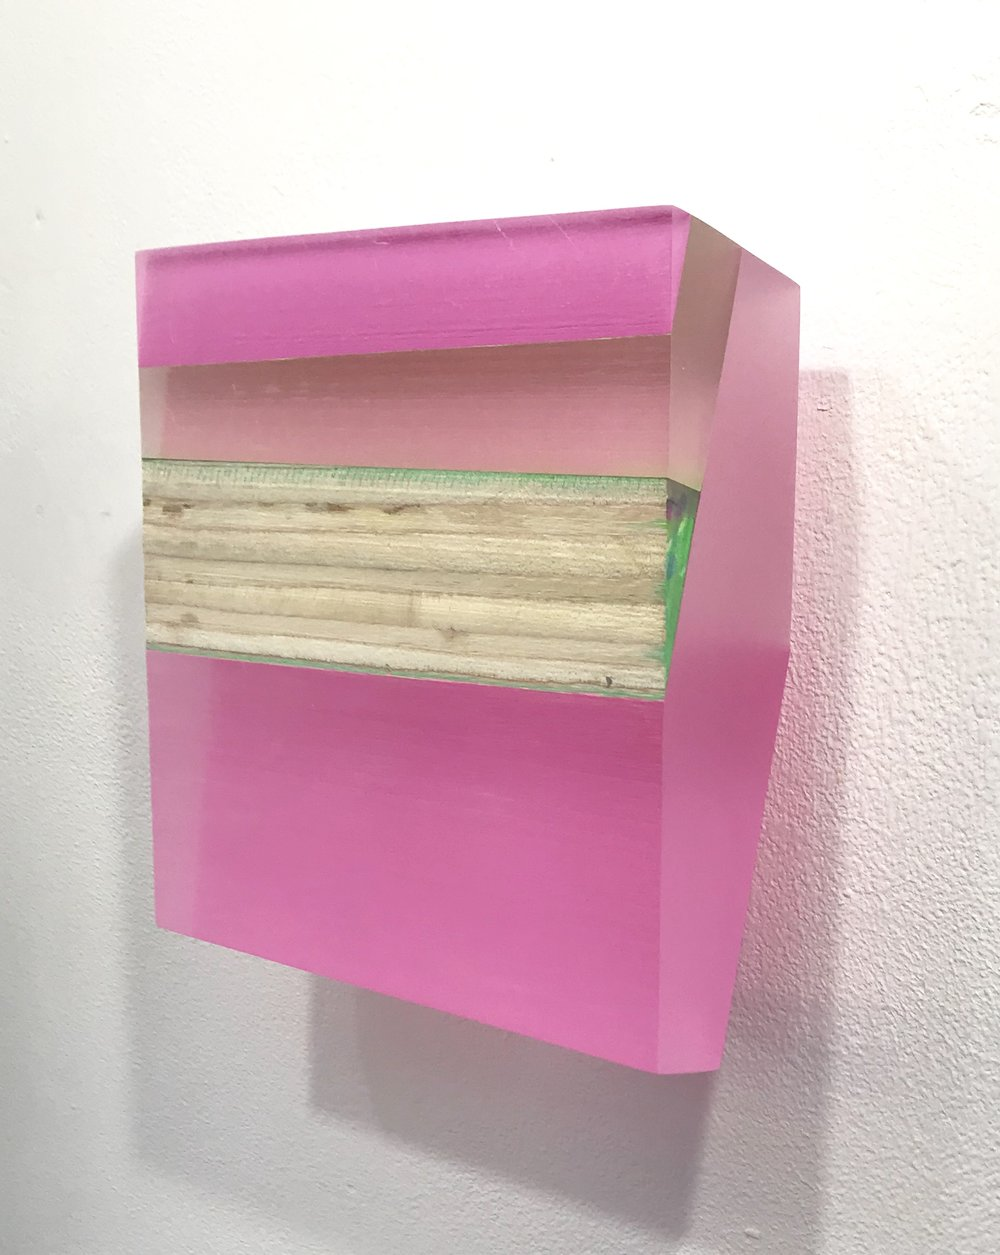 "Michelle Benoit, ""Sky brick series"", 2018. Mixed media on lucite and apple ply. 6.25x6.625 in."